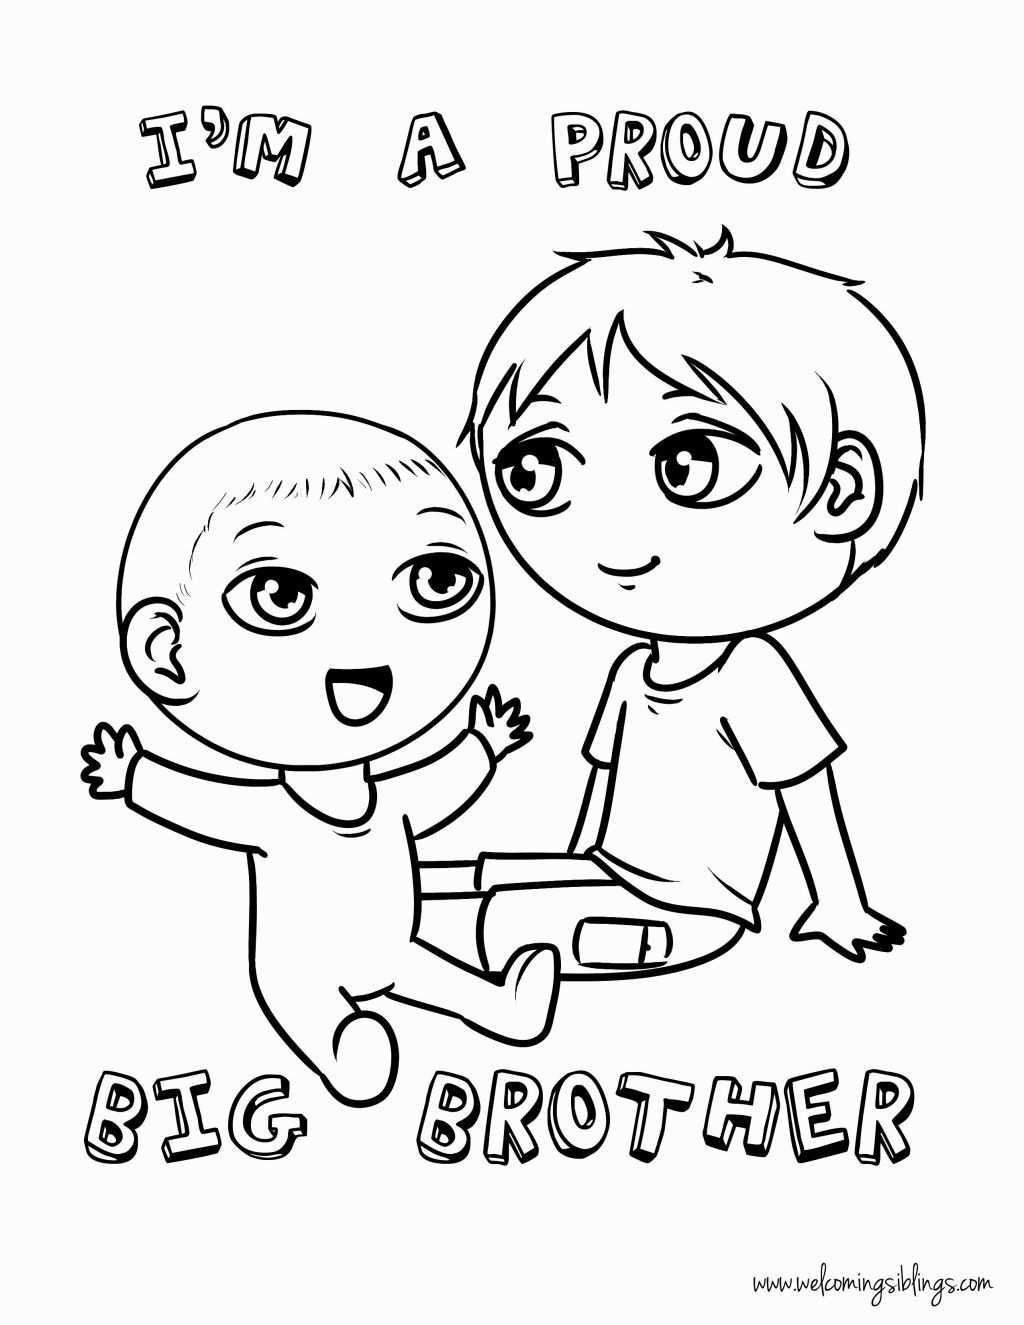 It is a picture of Lucrative big sister coloring book